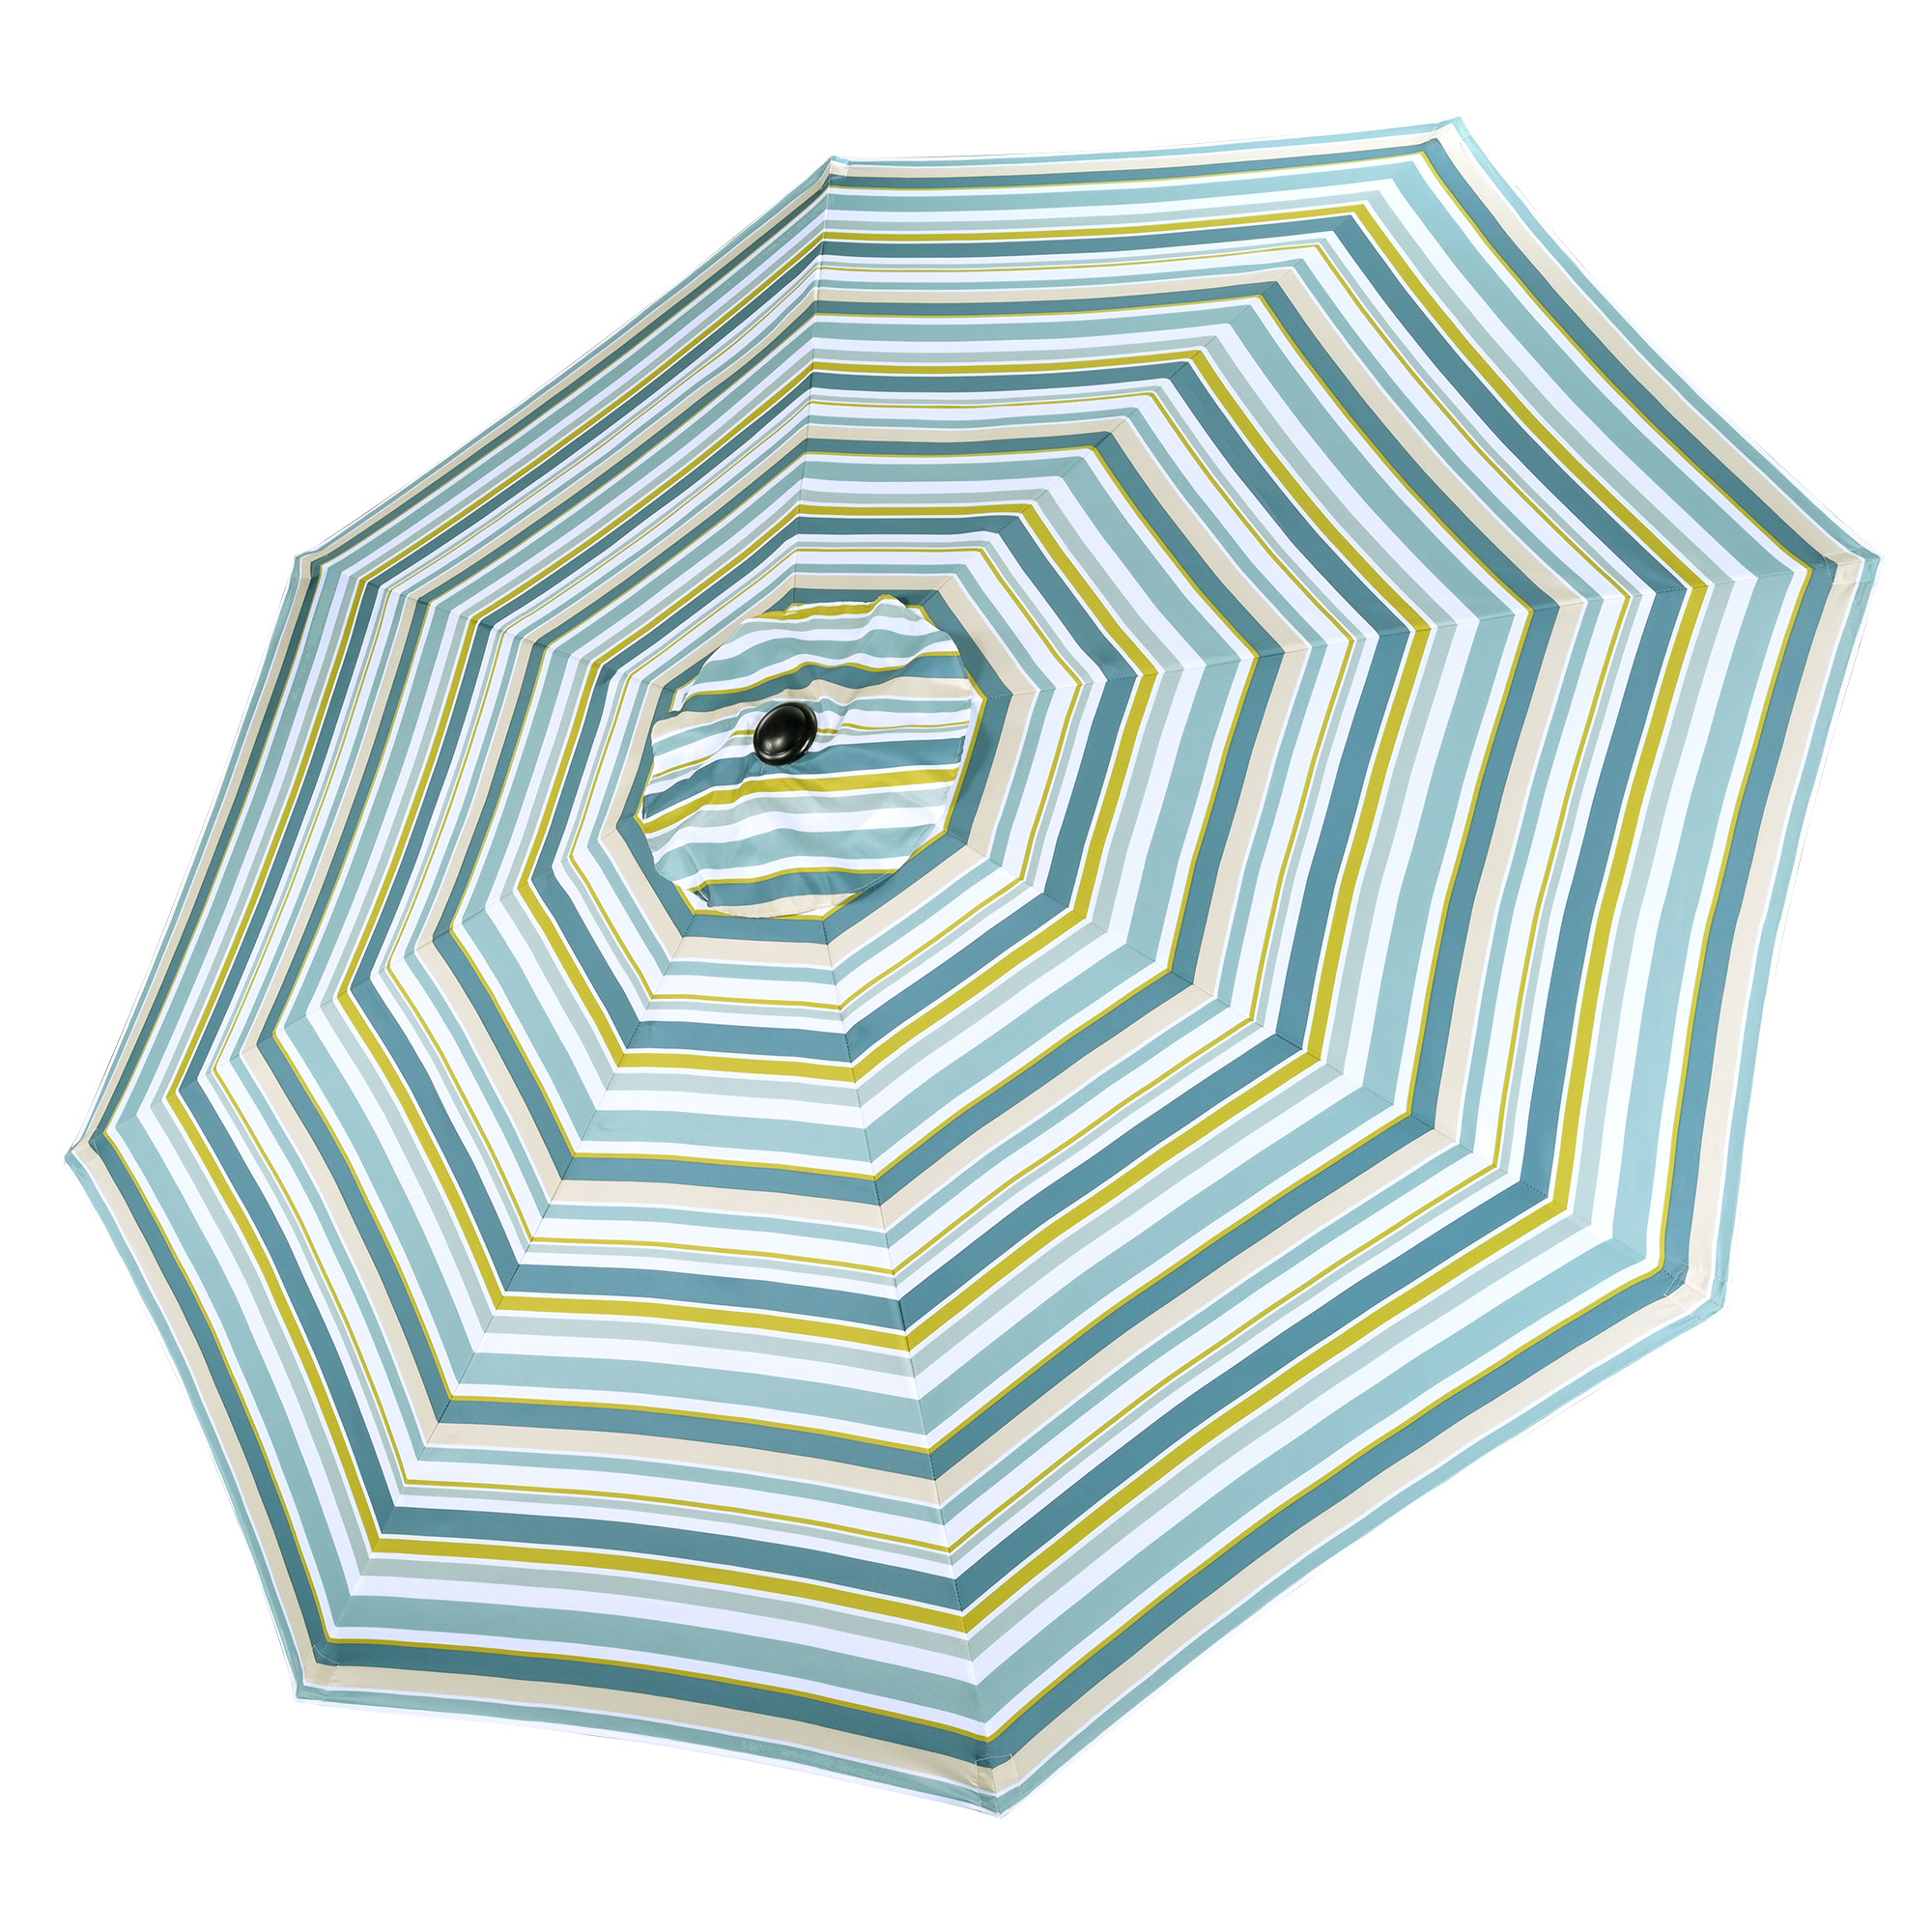 thumbnail 531 - 8'/9'/10'/13' Umbrella Replacement Canopy 8 Rib Outdoor Patio Top Cover Only Opt